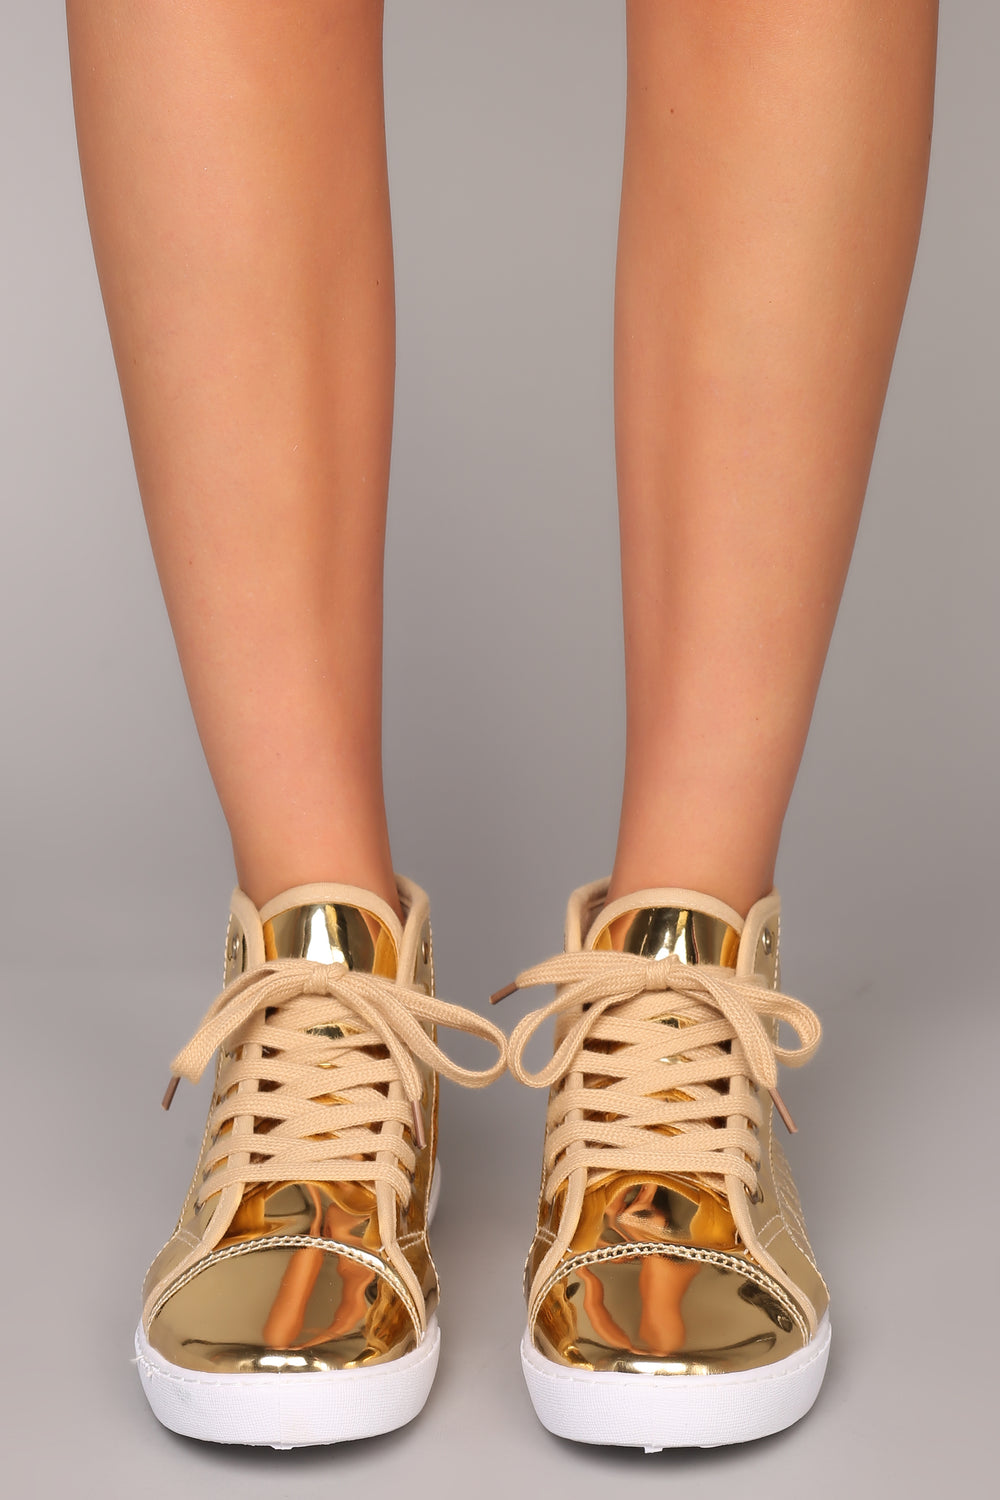 Quilt An Empire Sneaker - Gold